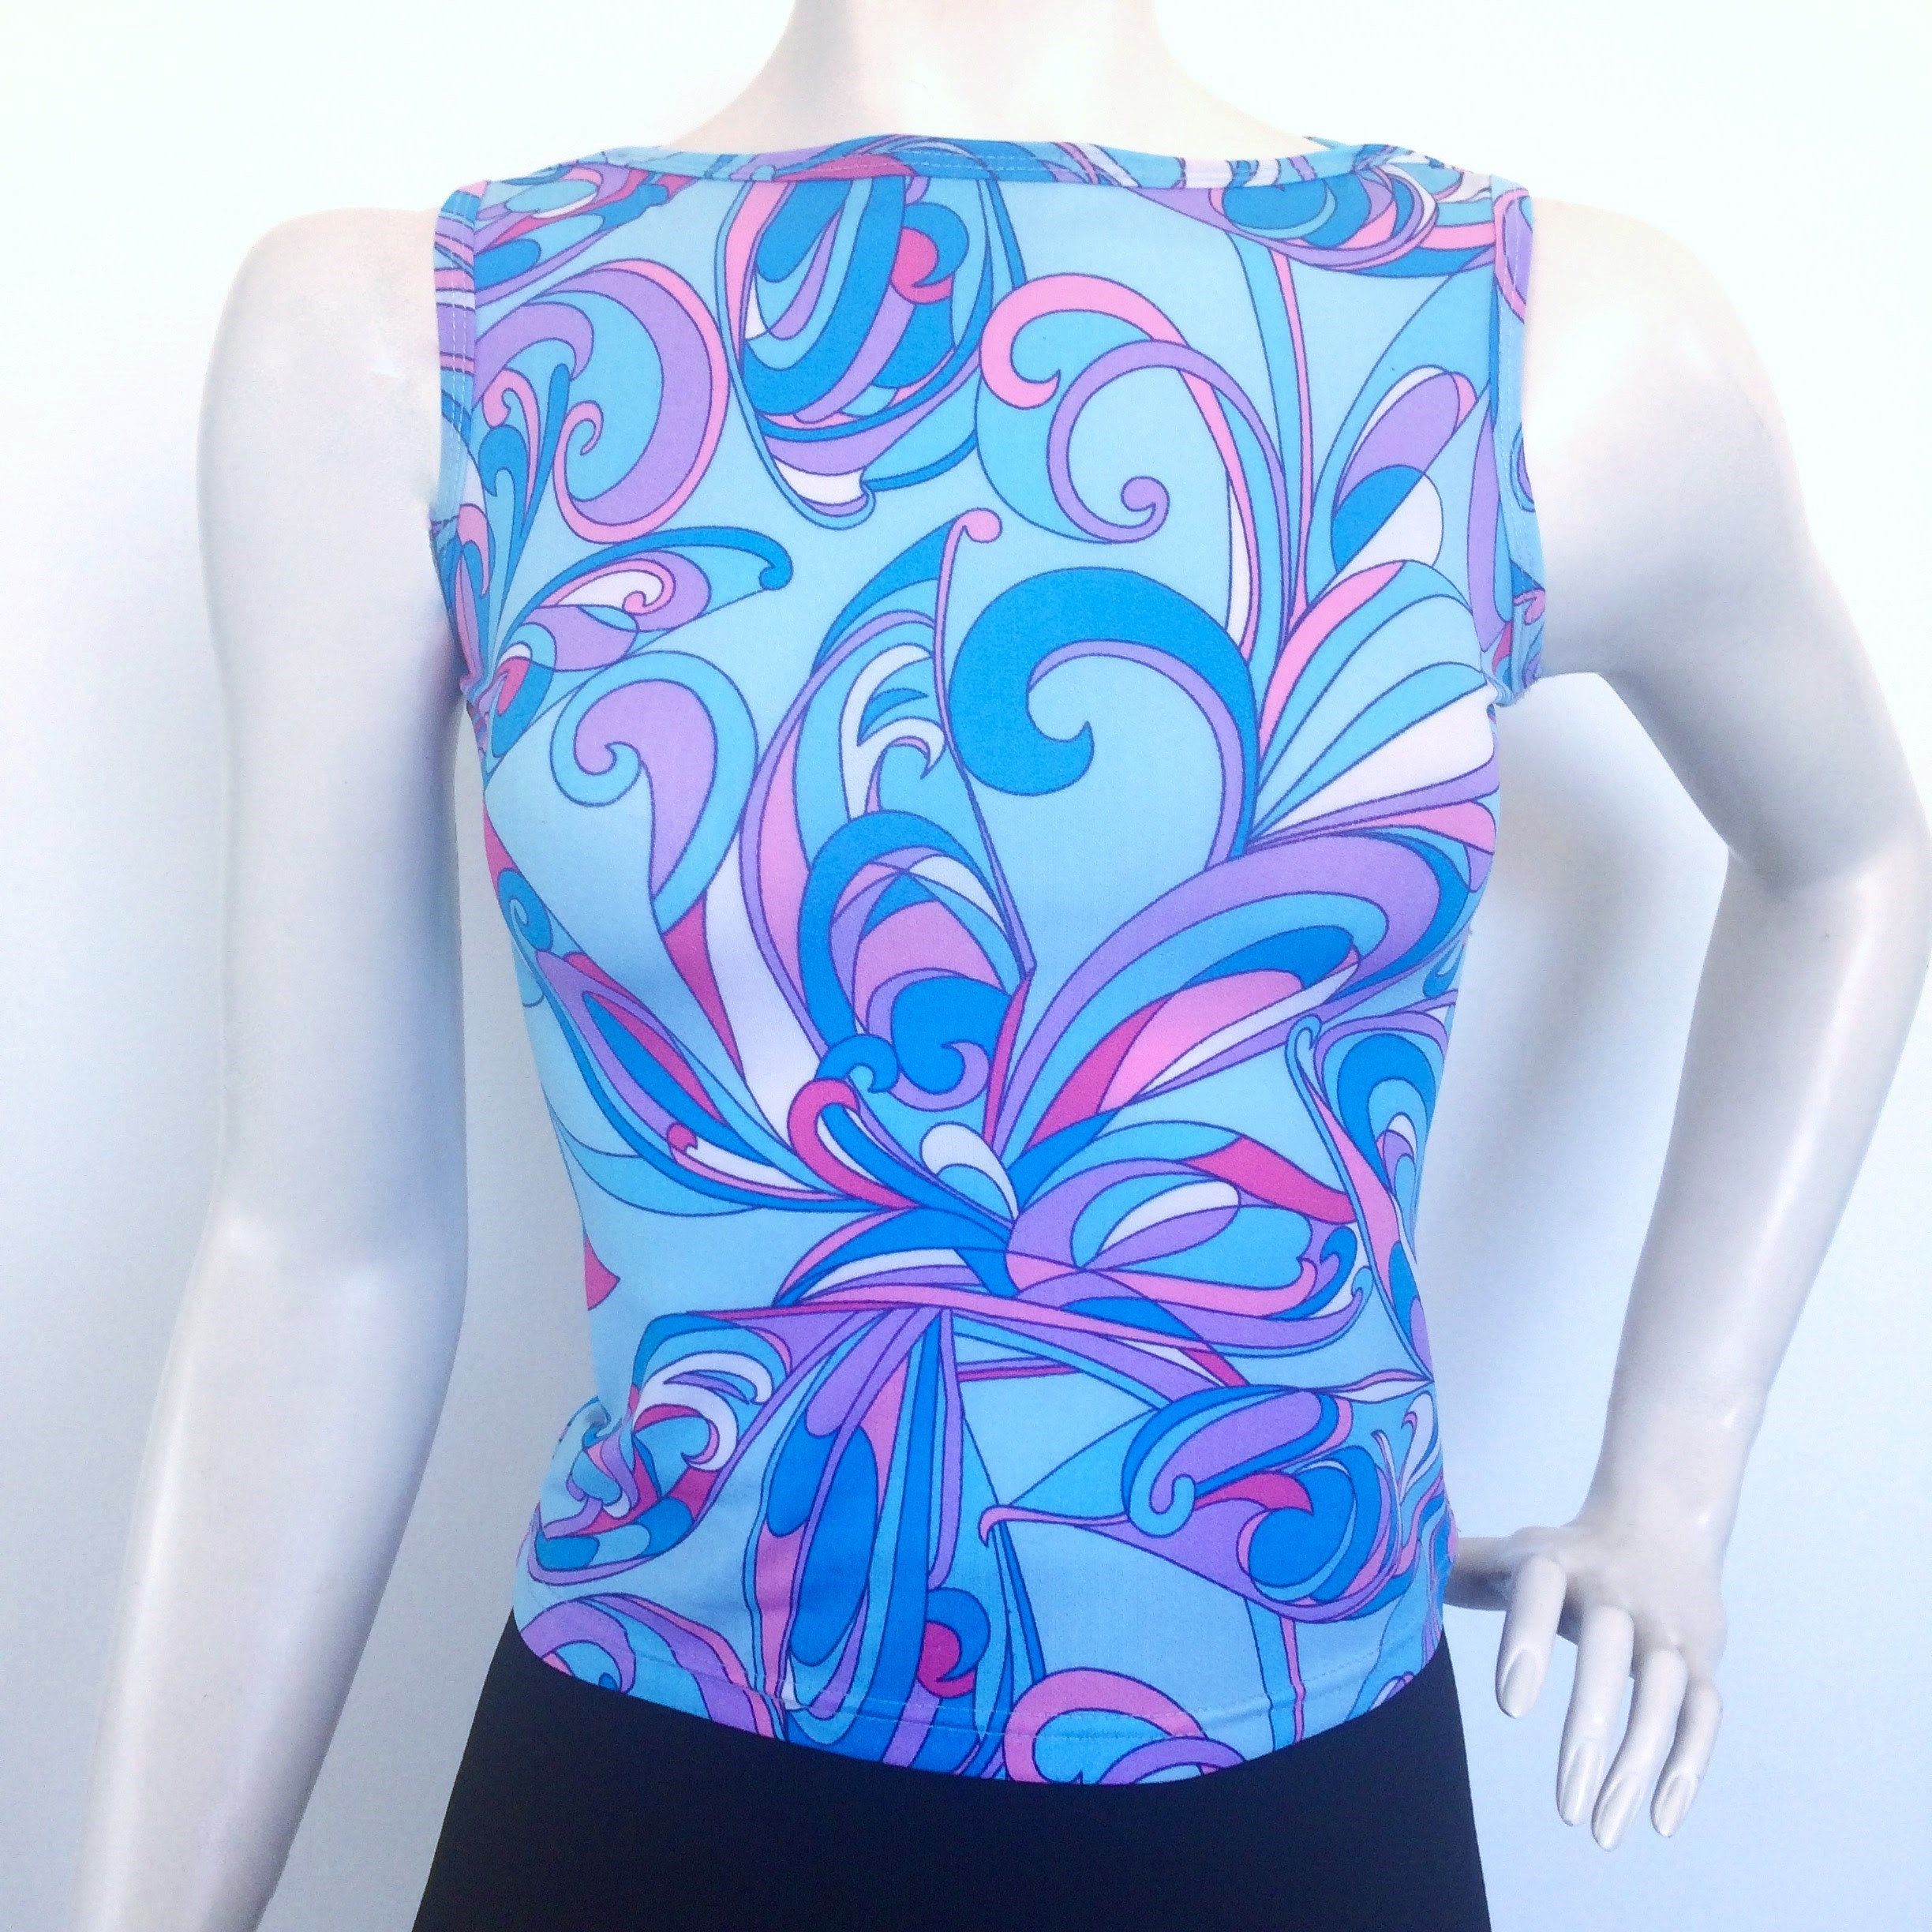 Vintage Psychedelic 90s Y2k Top With Pucci Inspired Print By Unknownquantity On Etsy Fashion Style Fash Vintage Outfits Psychedelic Pattern Vintage Fashion